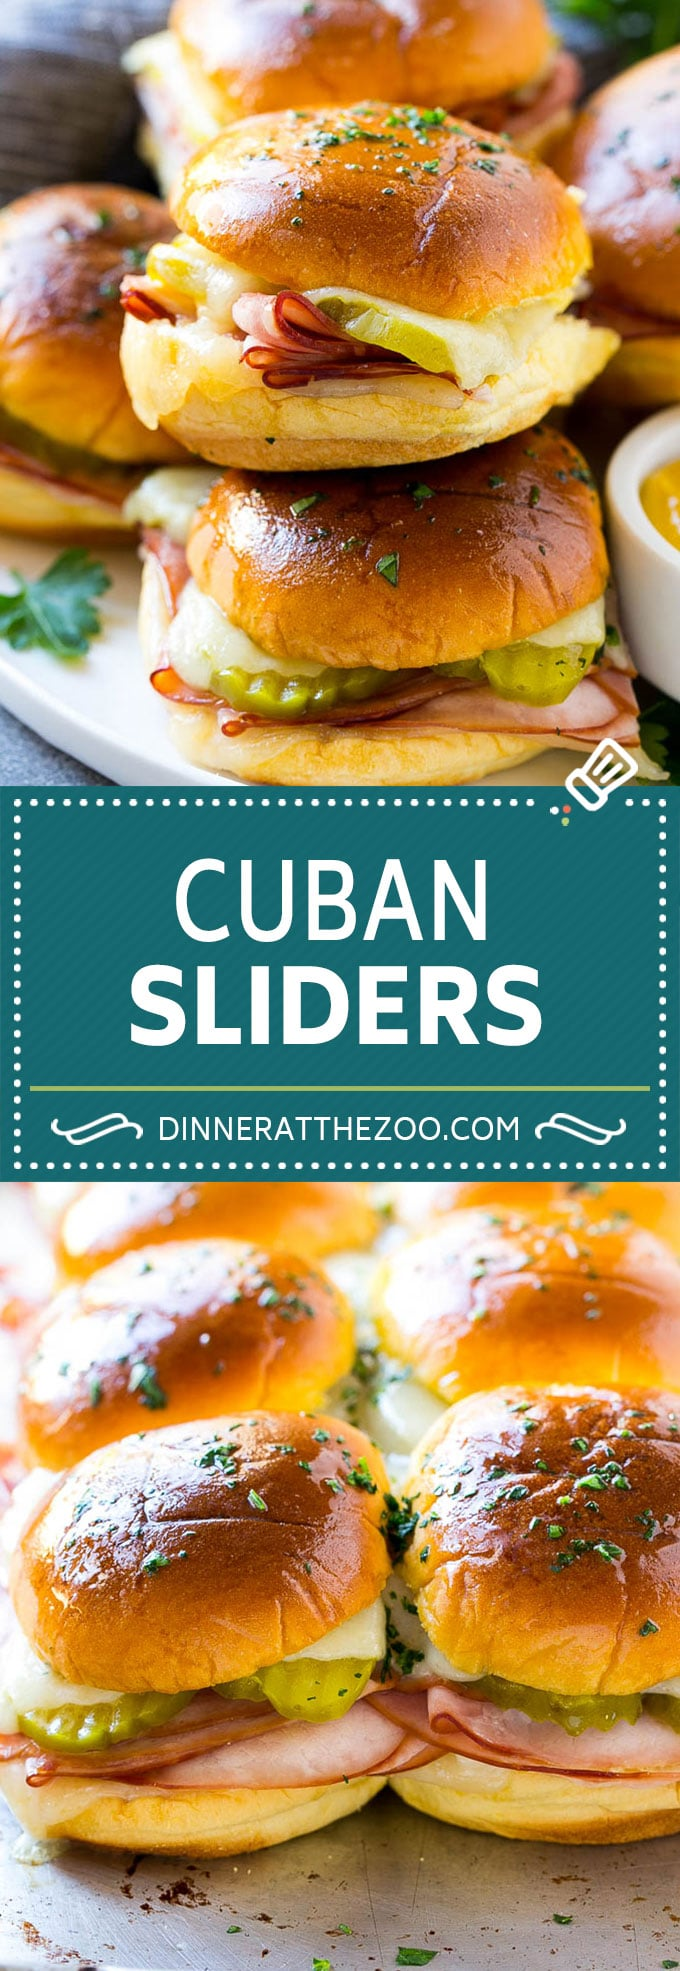 Cuban Sliders Recipe | Cuban Sandwich Recipe | Slider Sandwiches | Ham and Cheese Sliders #sliders #sandwiches #ham #cheese #appetizer #dinneratthezoo